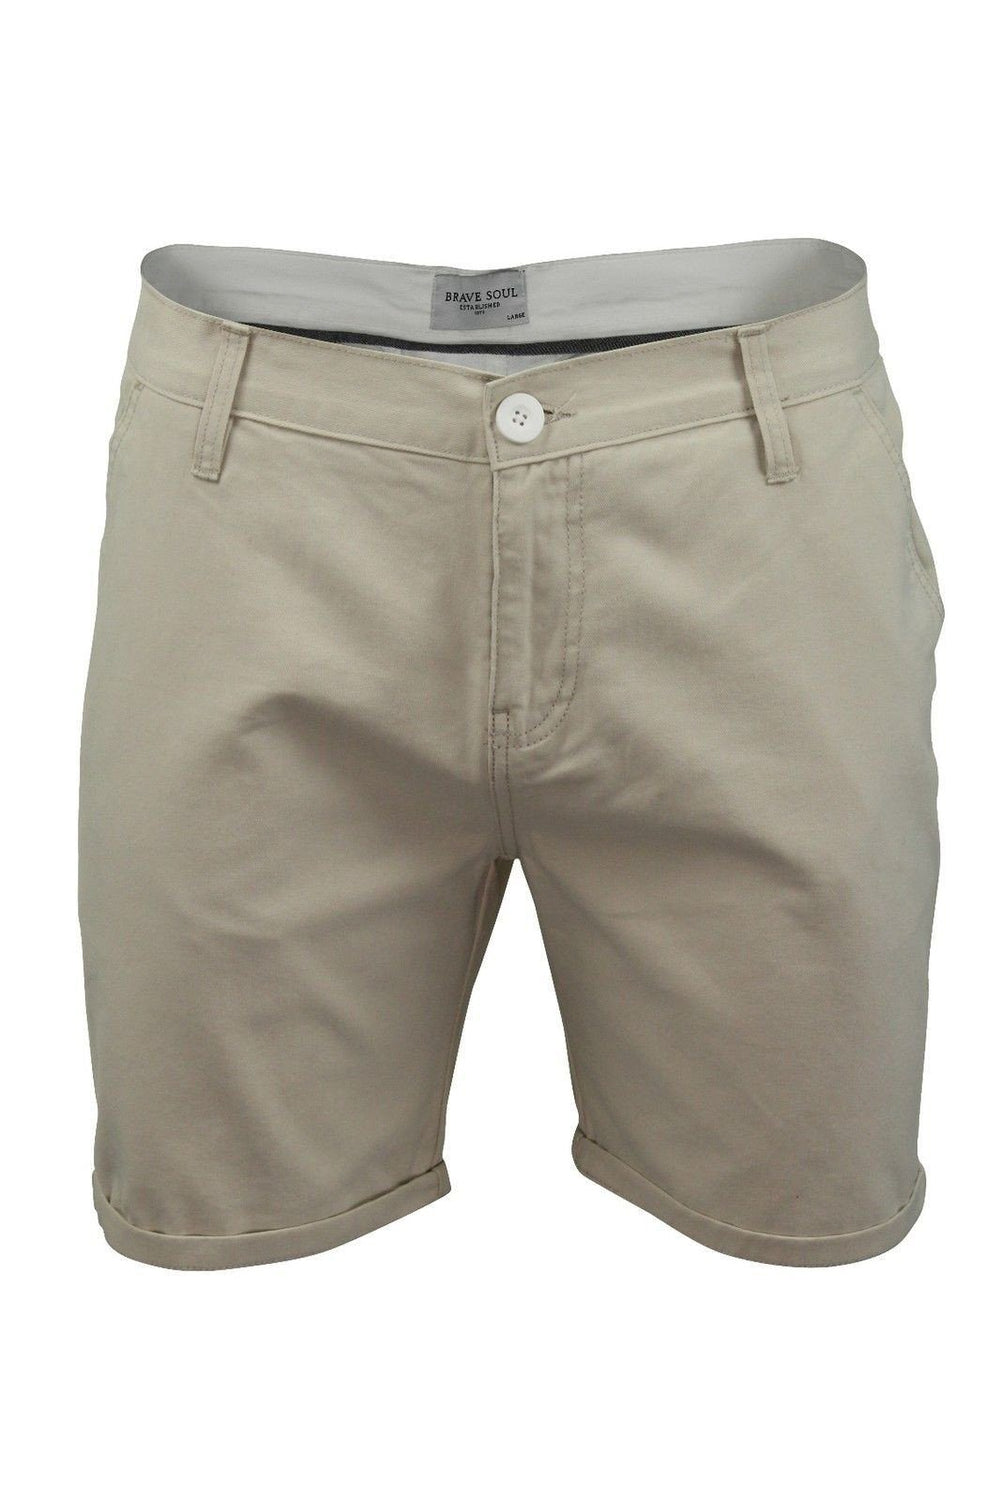 Shorts - O Skinny Chino Shorts Stone XL